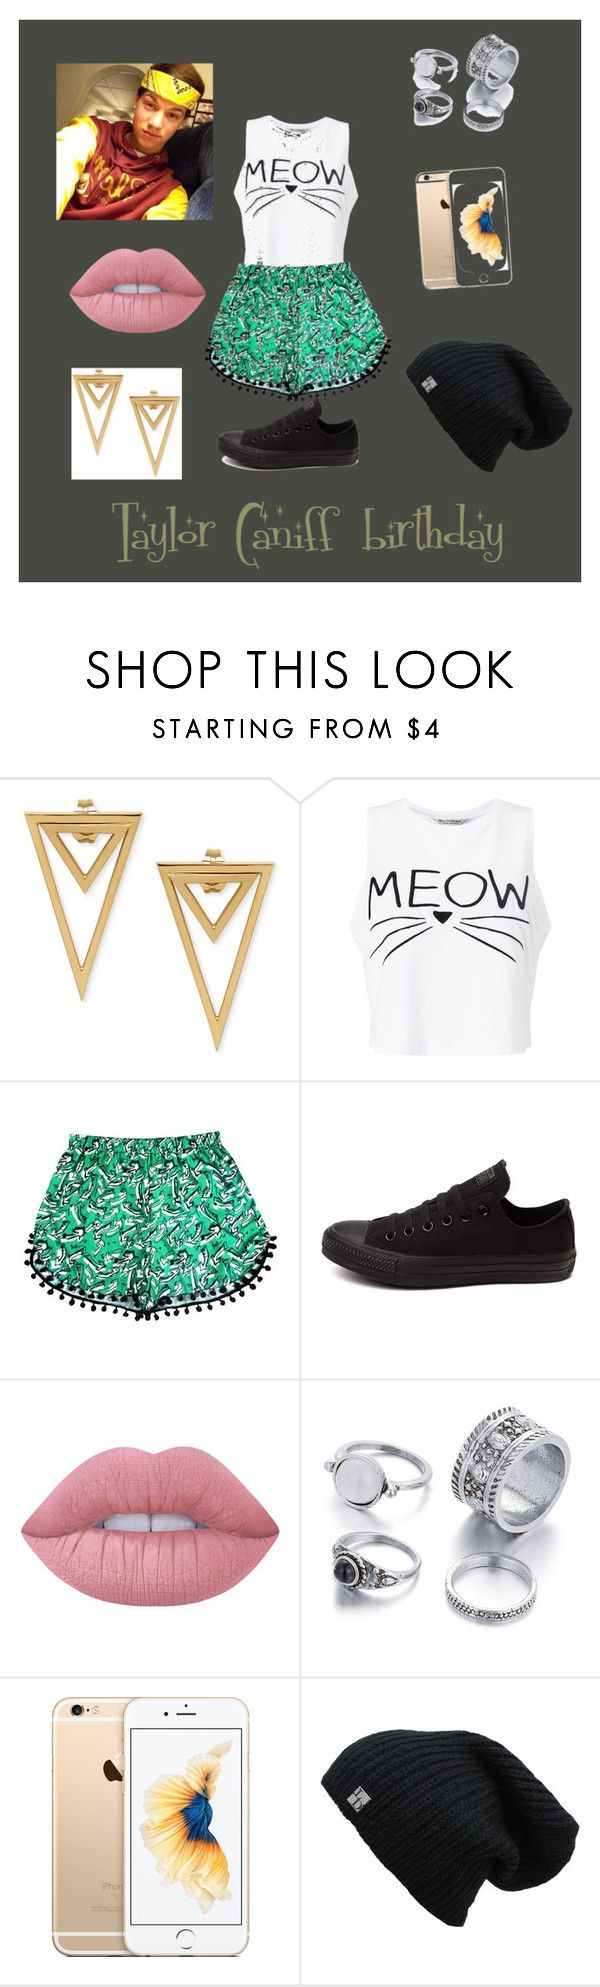 """""""Taylor Caniff birthday"""" by cattycatty1313 ❤ liked on Polyvore featuring Miss Selfridge, Converse and Lime Crime"""